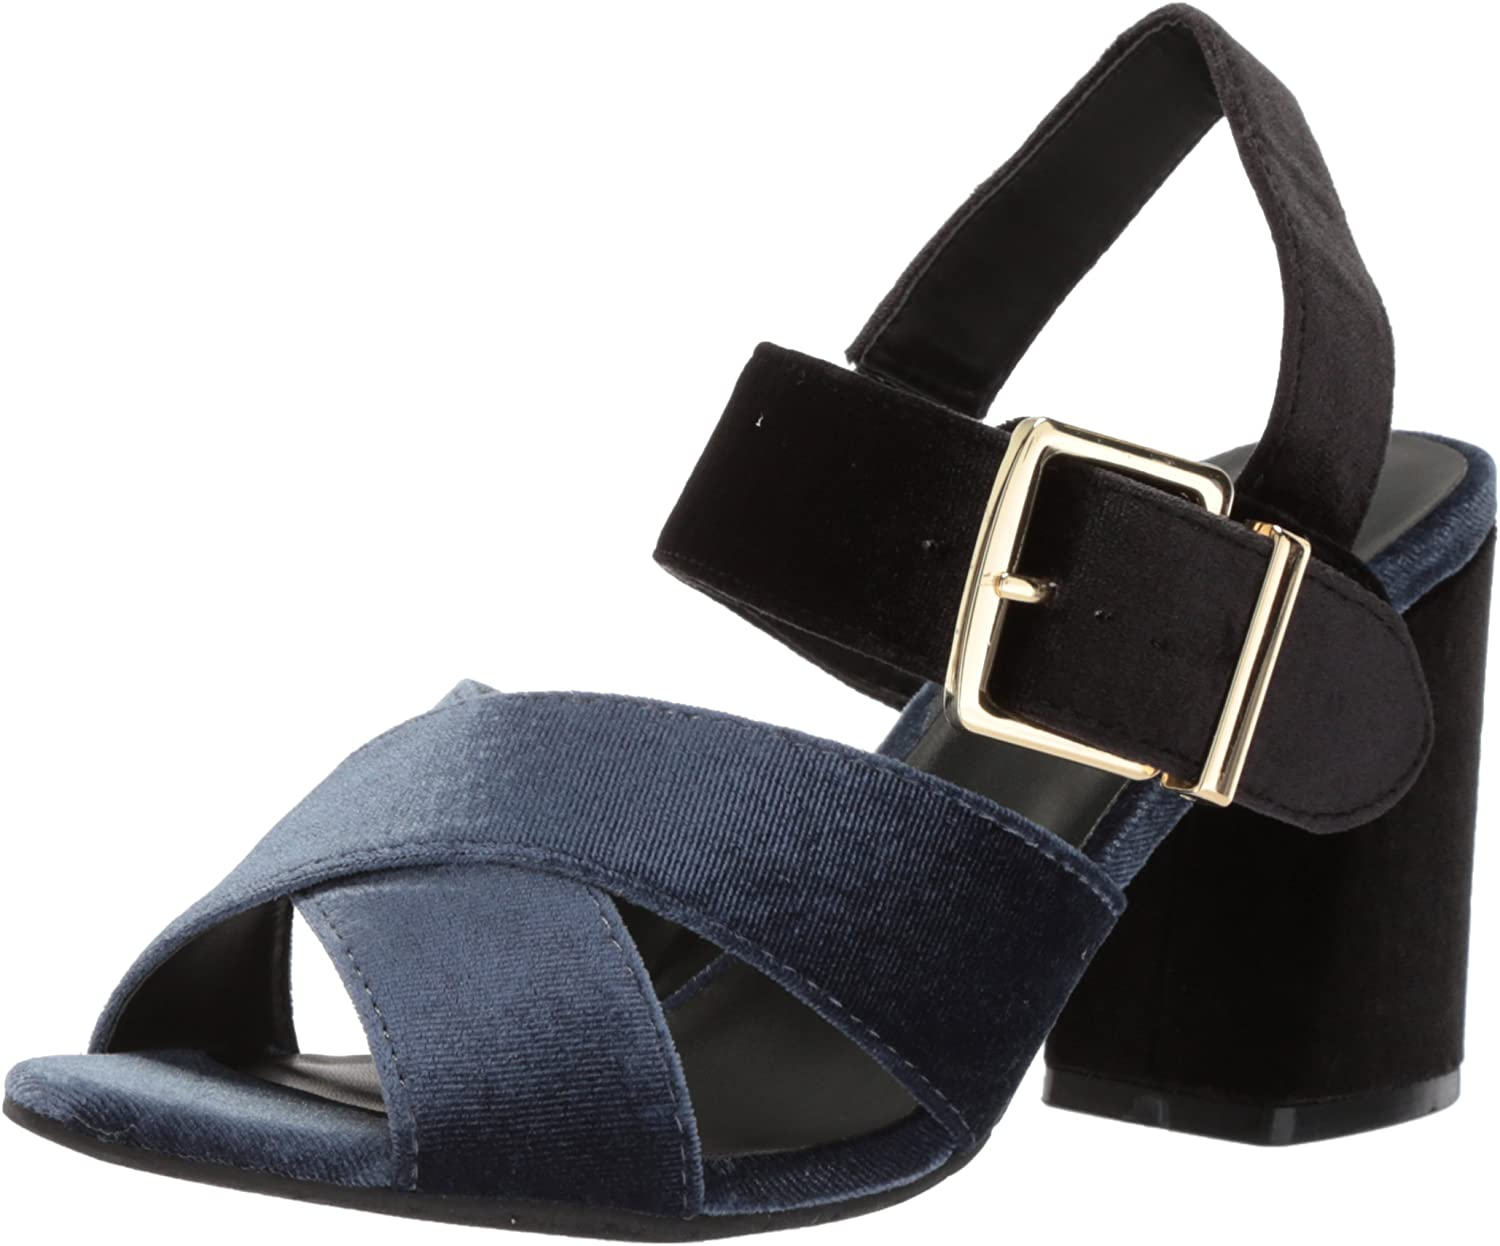 Kenneth Cole REACTION Womens Lilia Velvet Dress Sandal with Flared Block Heel Heeled Sandal